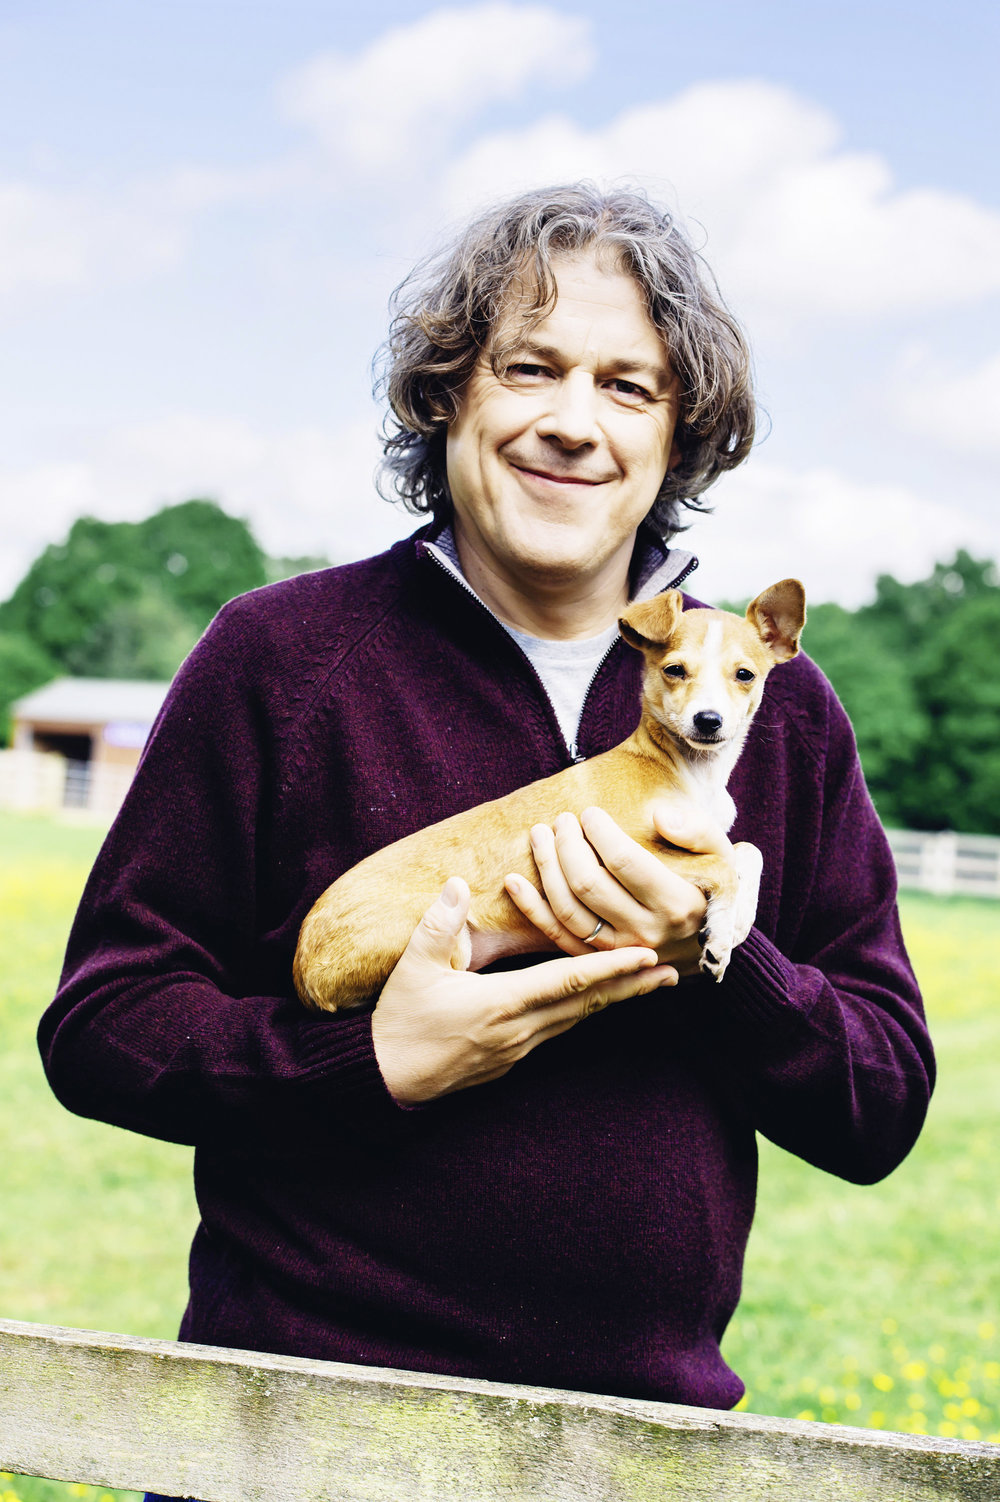 the-return-of-the-dog-rescuers-with-alan-davies